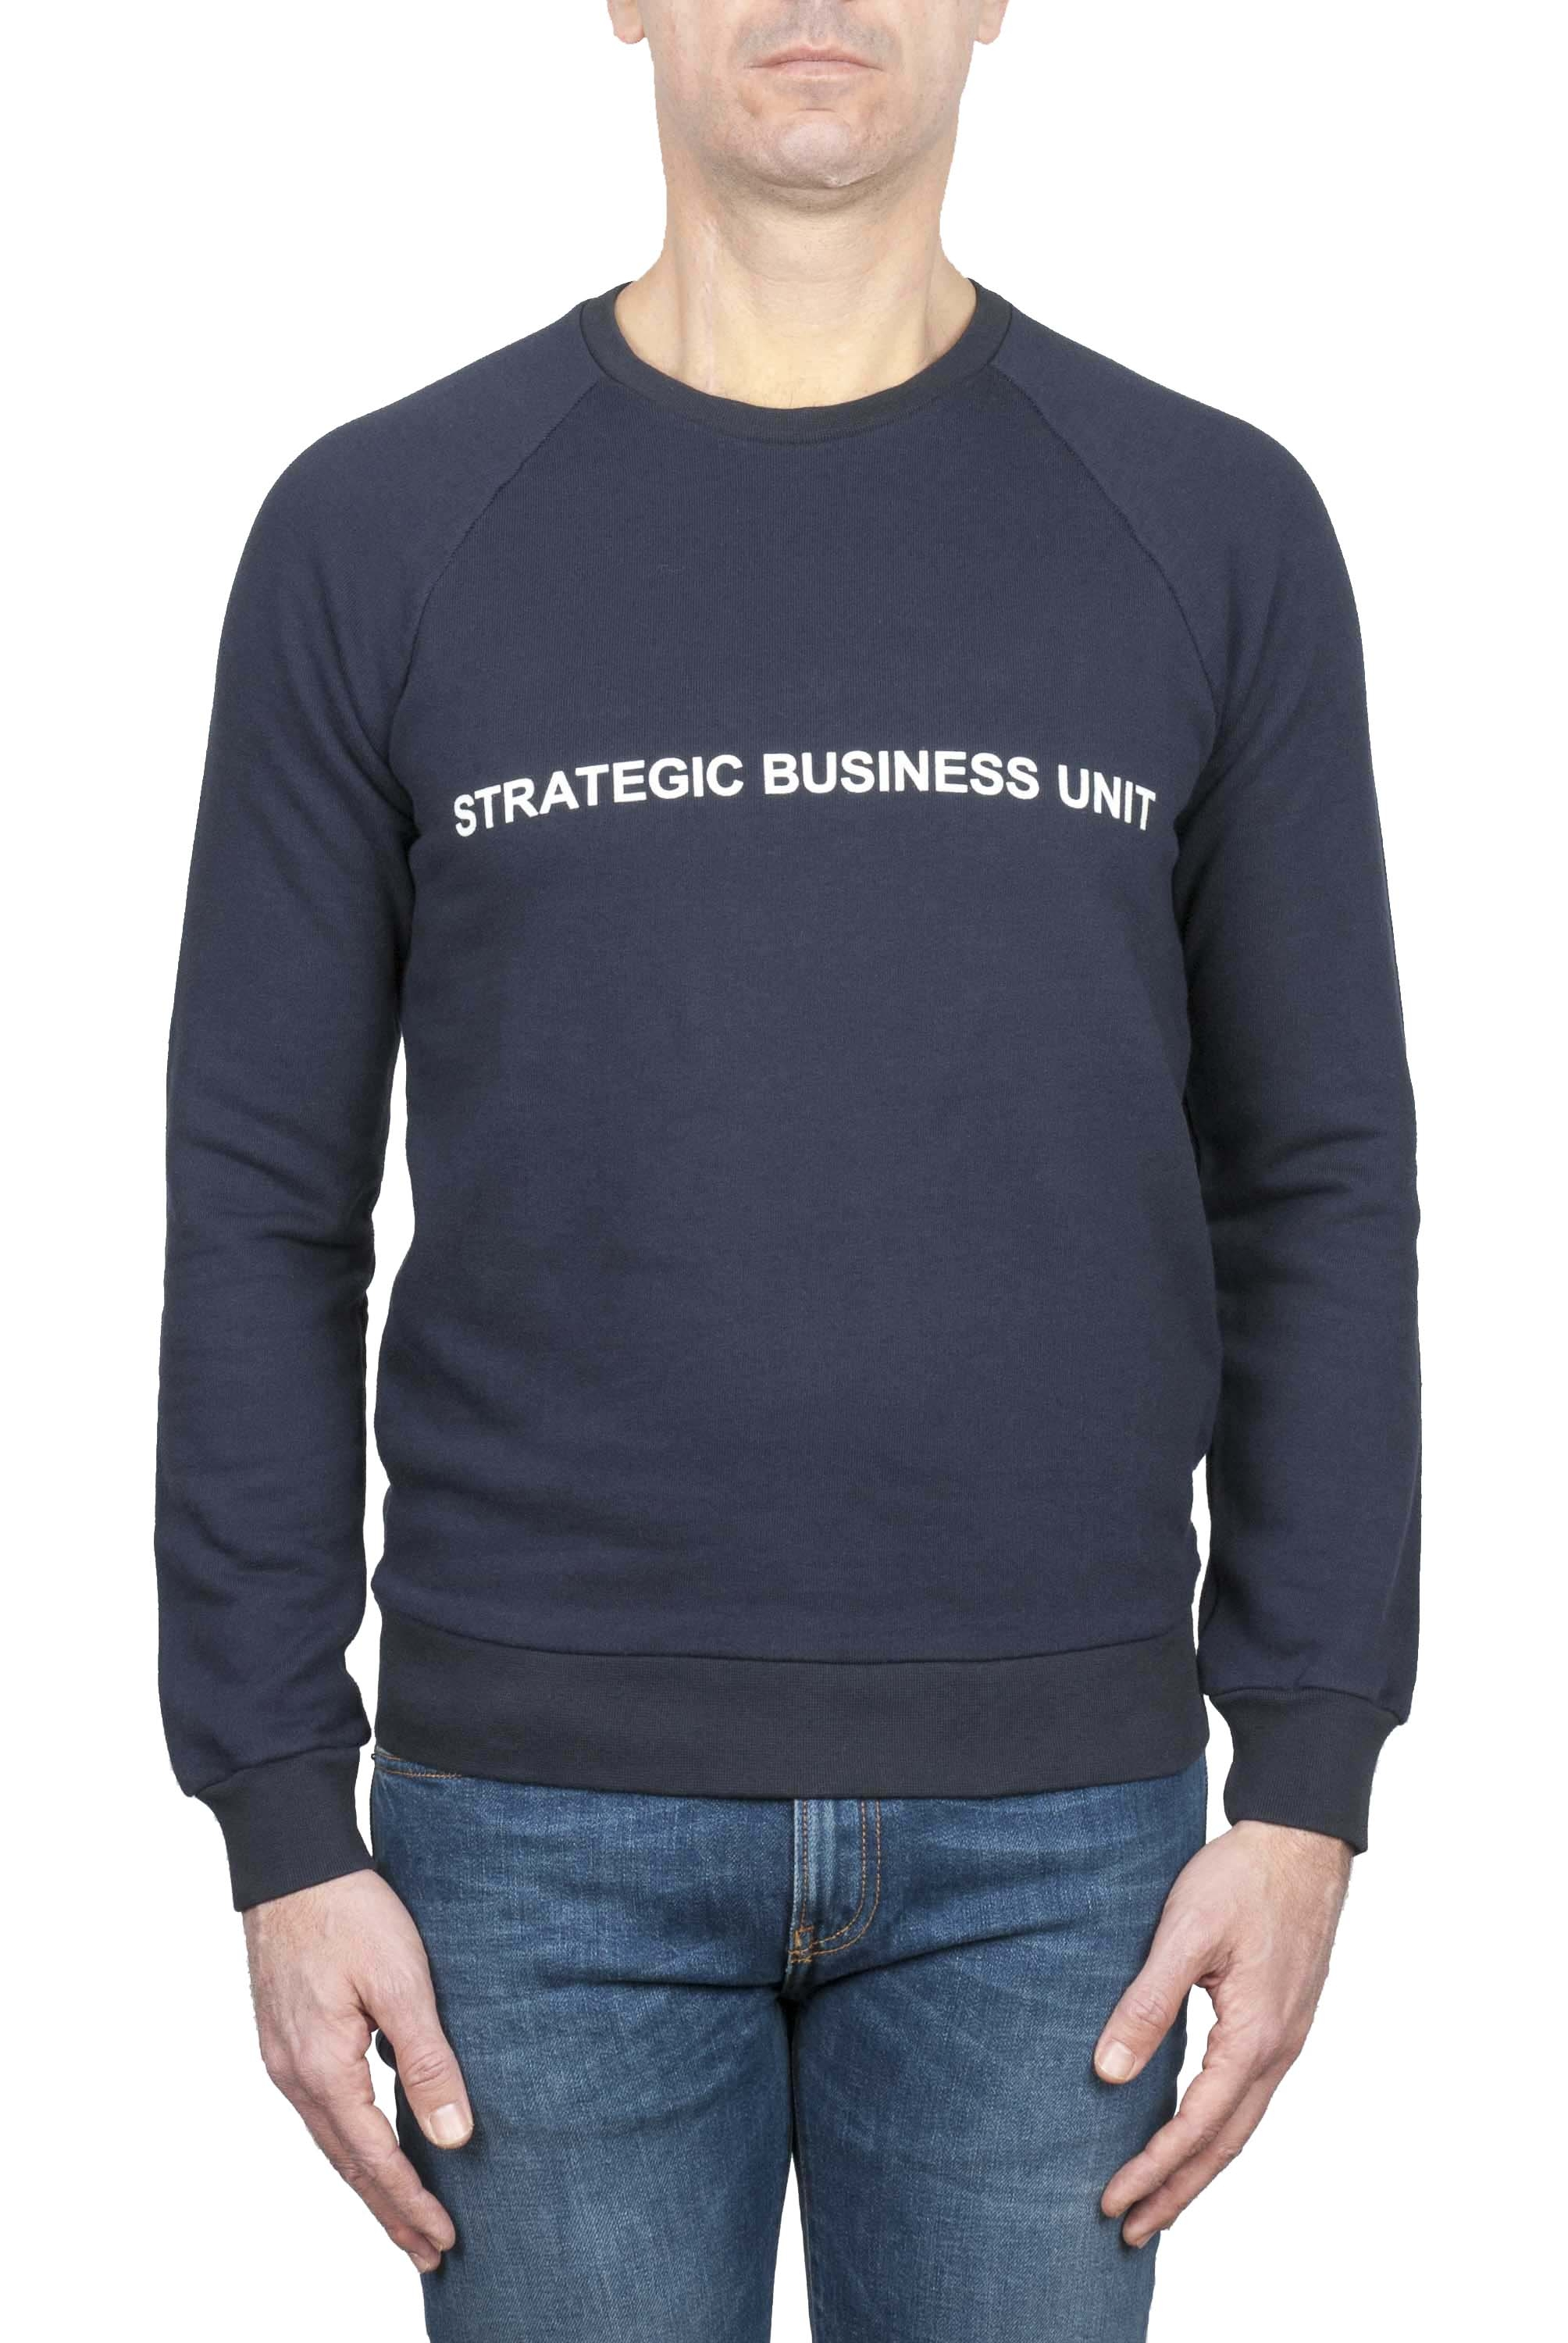 SBU 01466_2020SS Sweat à col rond imprimé logo Strategic Business Unit 01